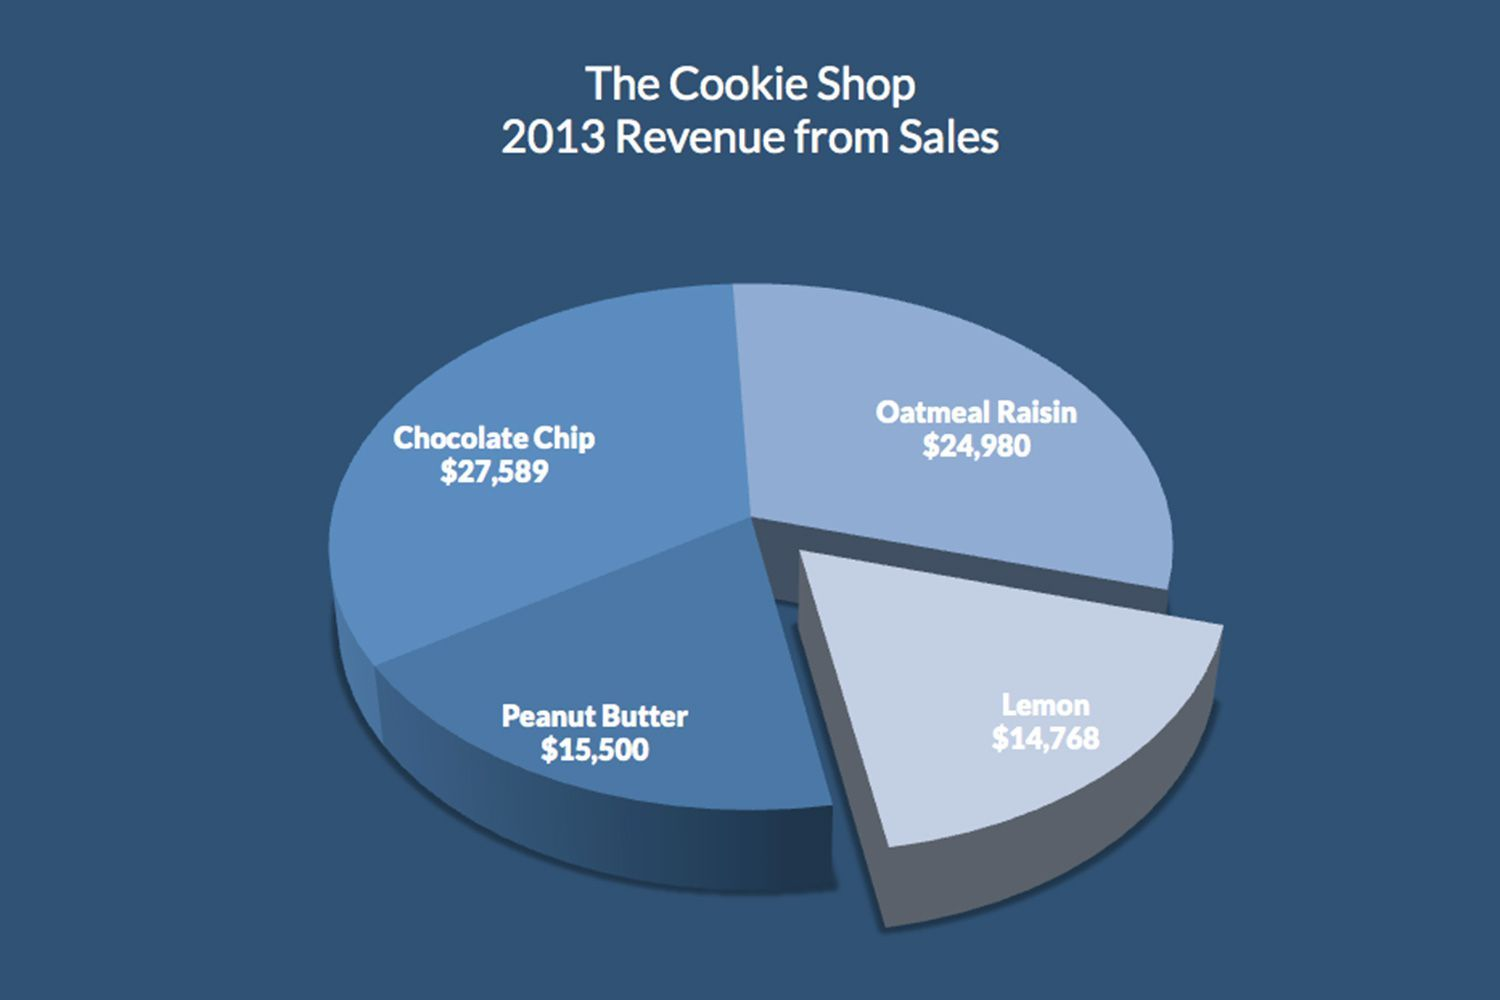 Use a pie chart in Excel to show the percentage each slice